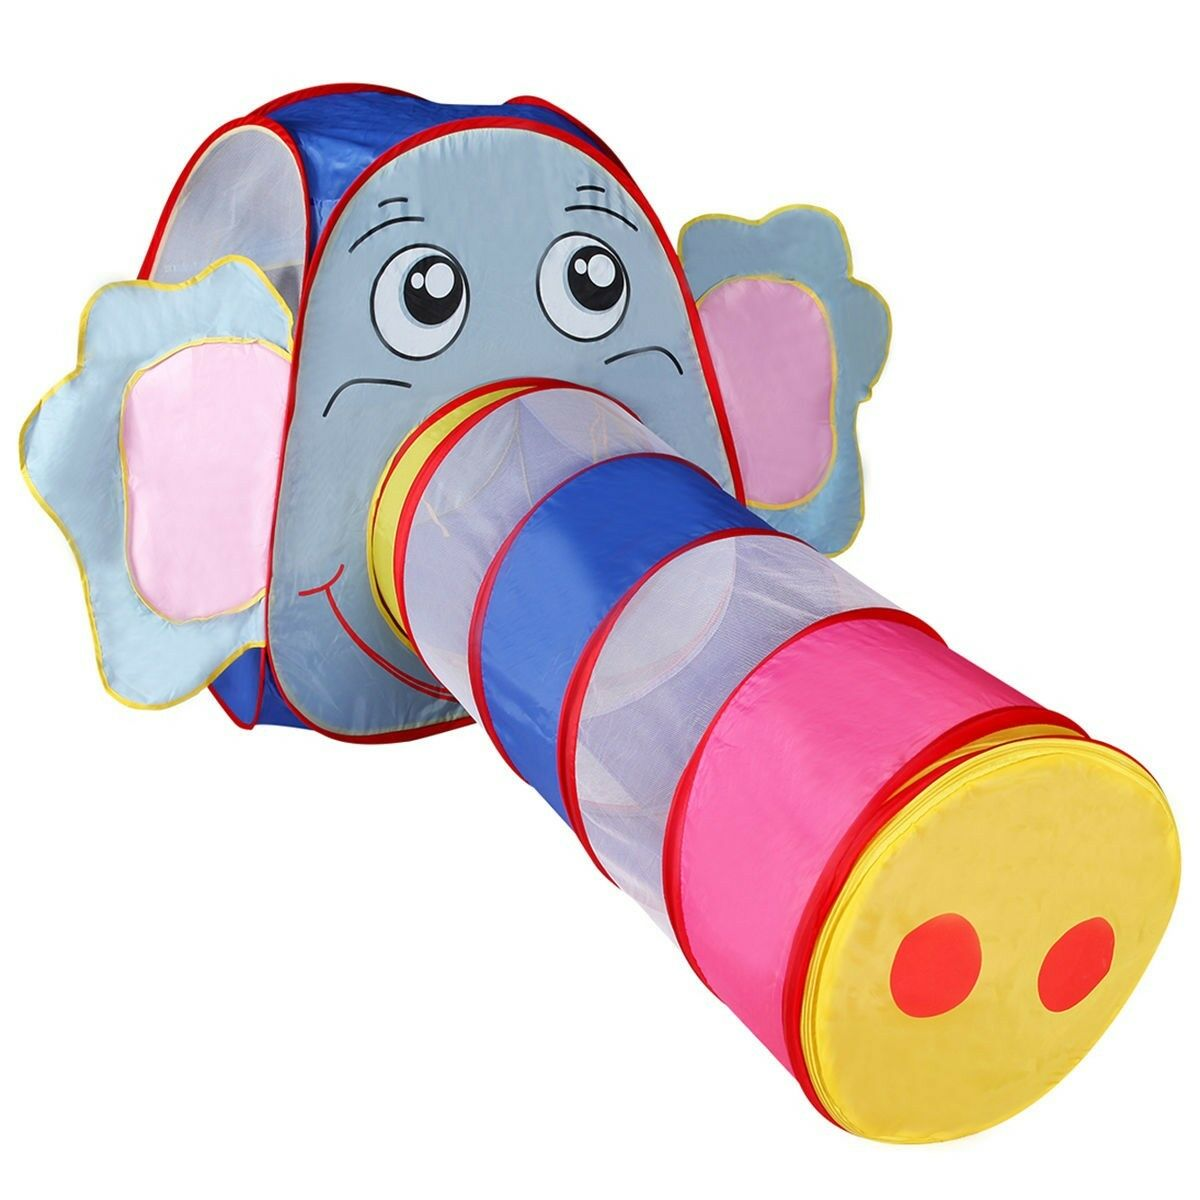 Foldable Elephant Tunnel Kids Play Tent Tent Tent Play Game Room 65.4  x 28.7  x 32.7  US 4f02e5